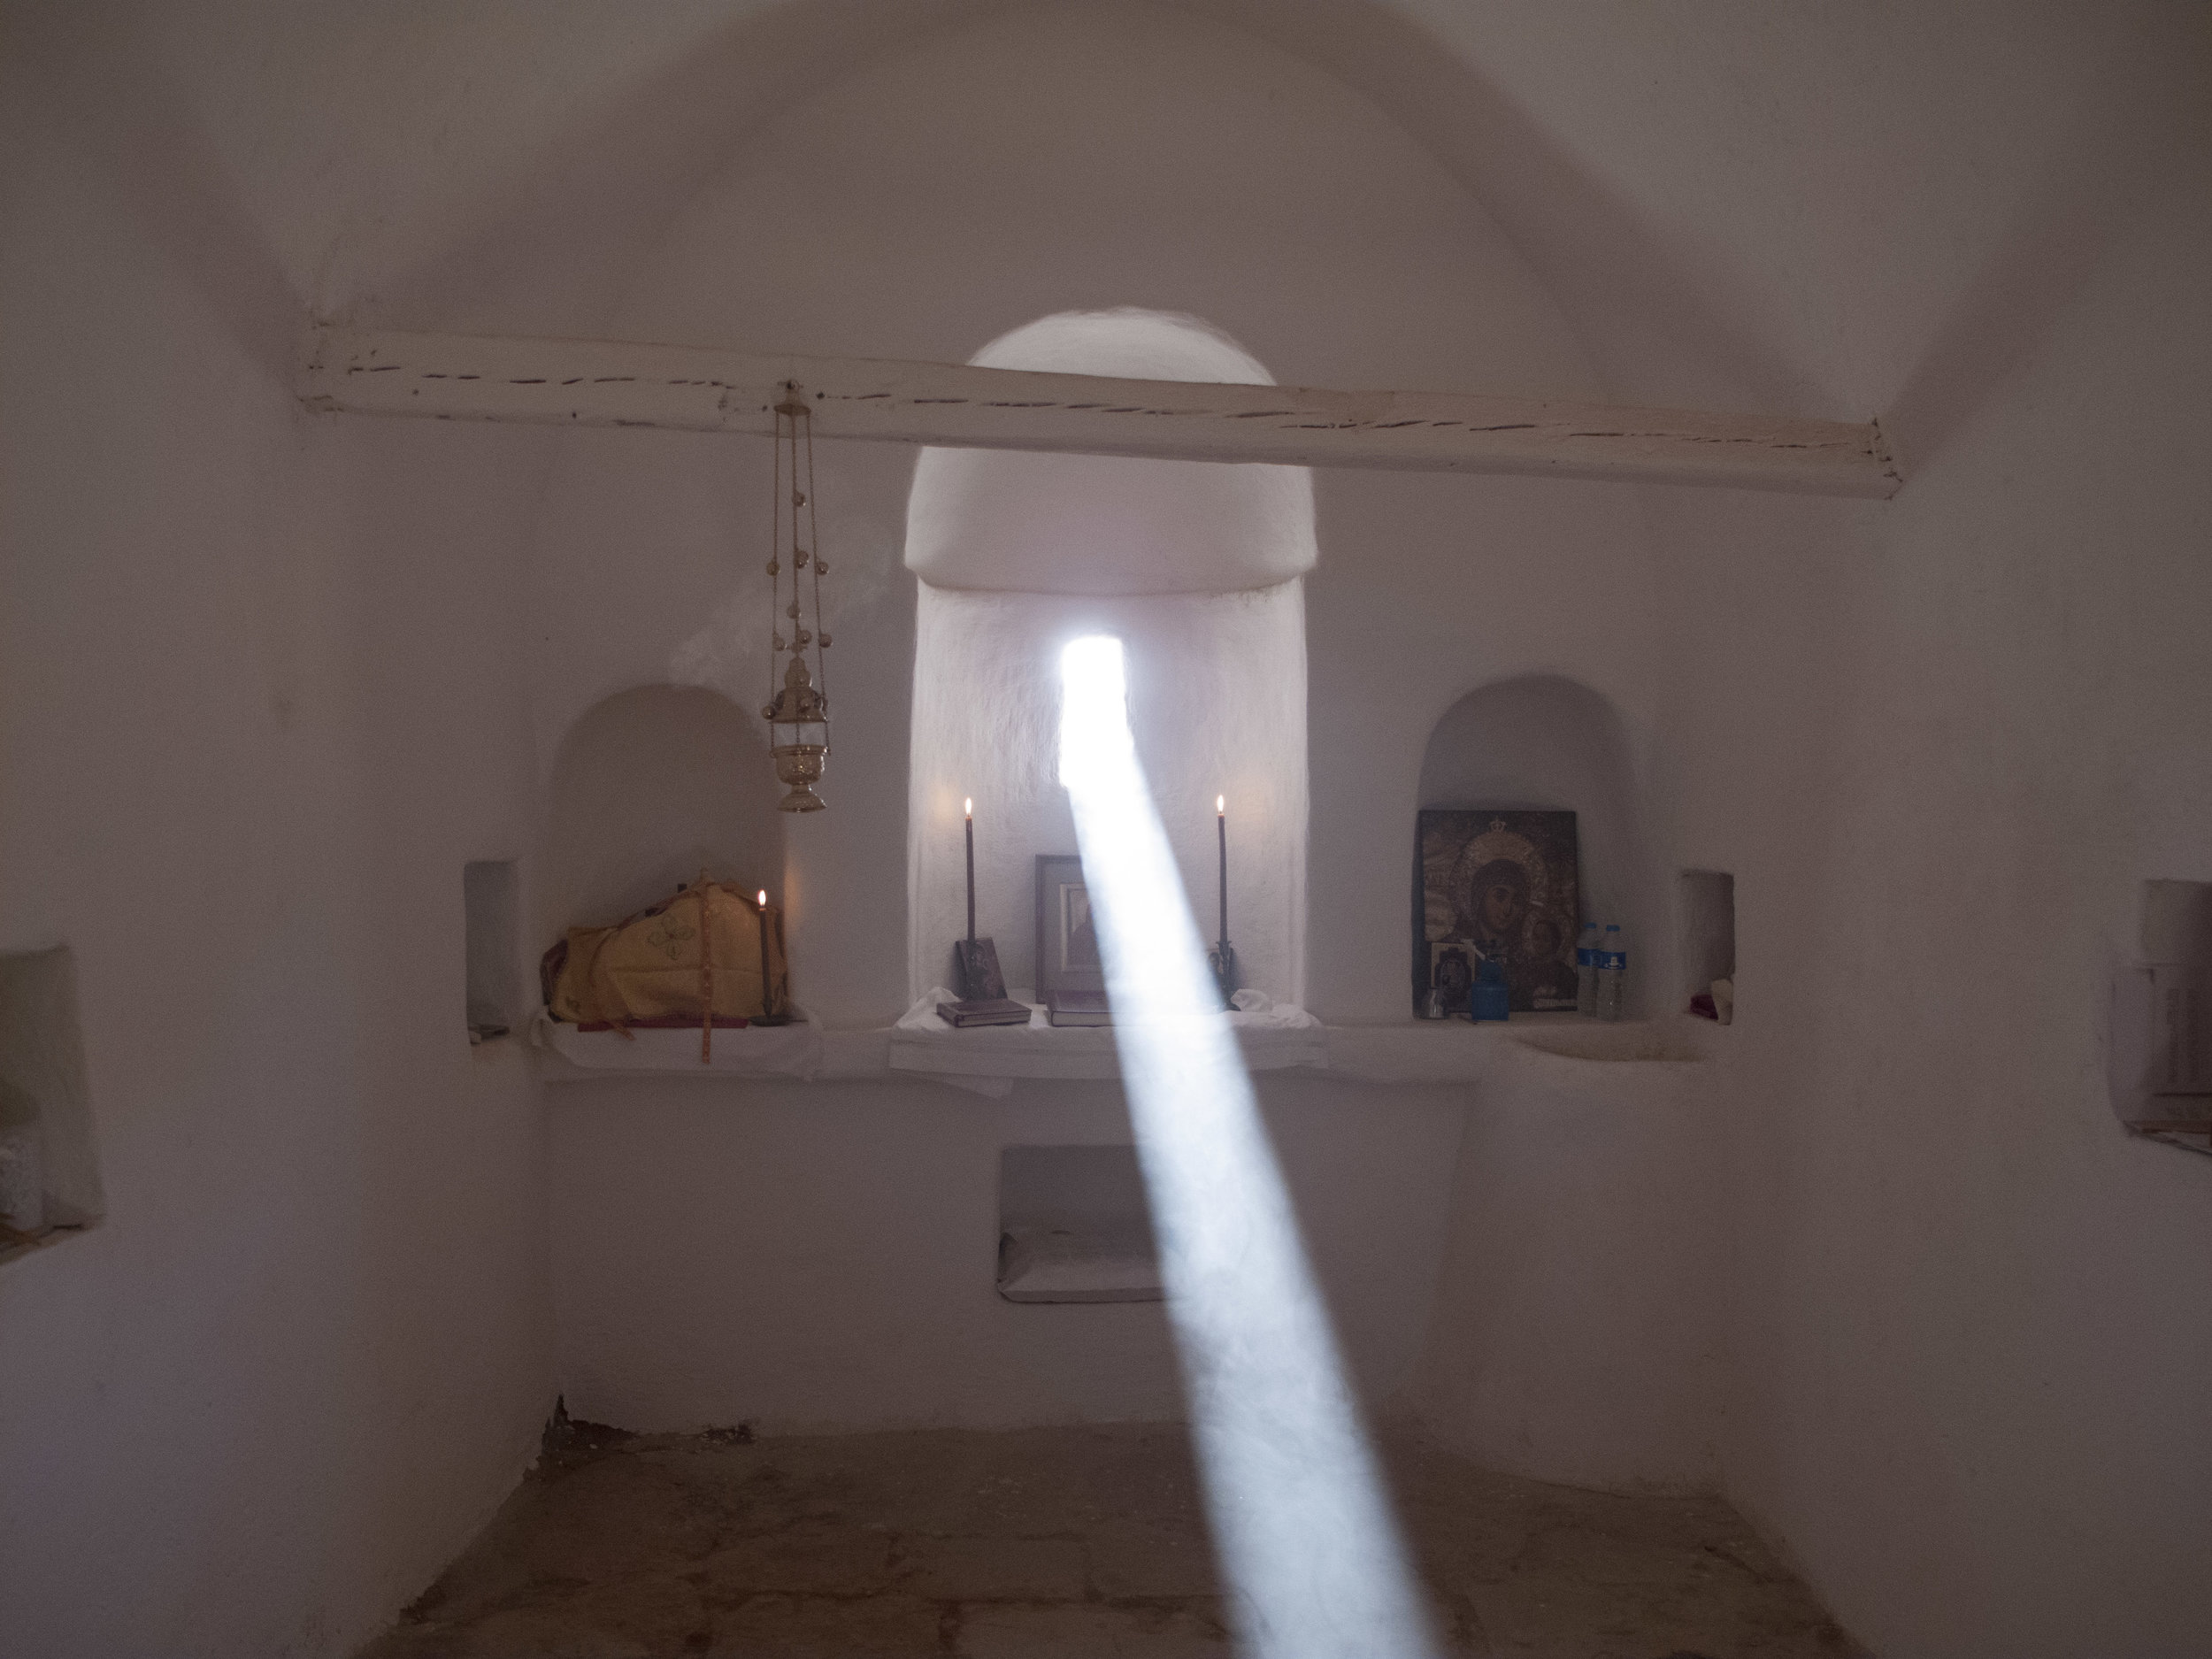 """A beam of sunlight entered through the tiny window of this most beautiful little chapel."" The Chapel of Saint Anne, the mother of the Theotokos, is located high in the Sinai Mountains. (Fr. Justin's Blog:    http://www.fatherjustinsblog.info/archives/4704    )"